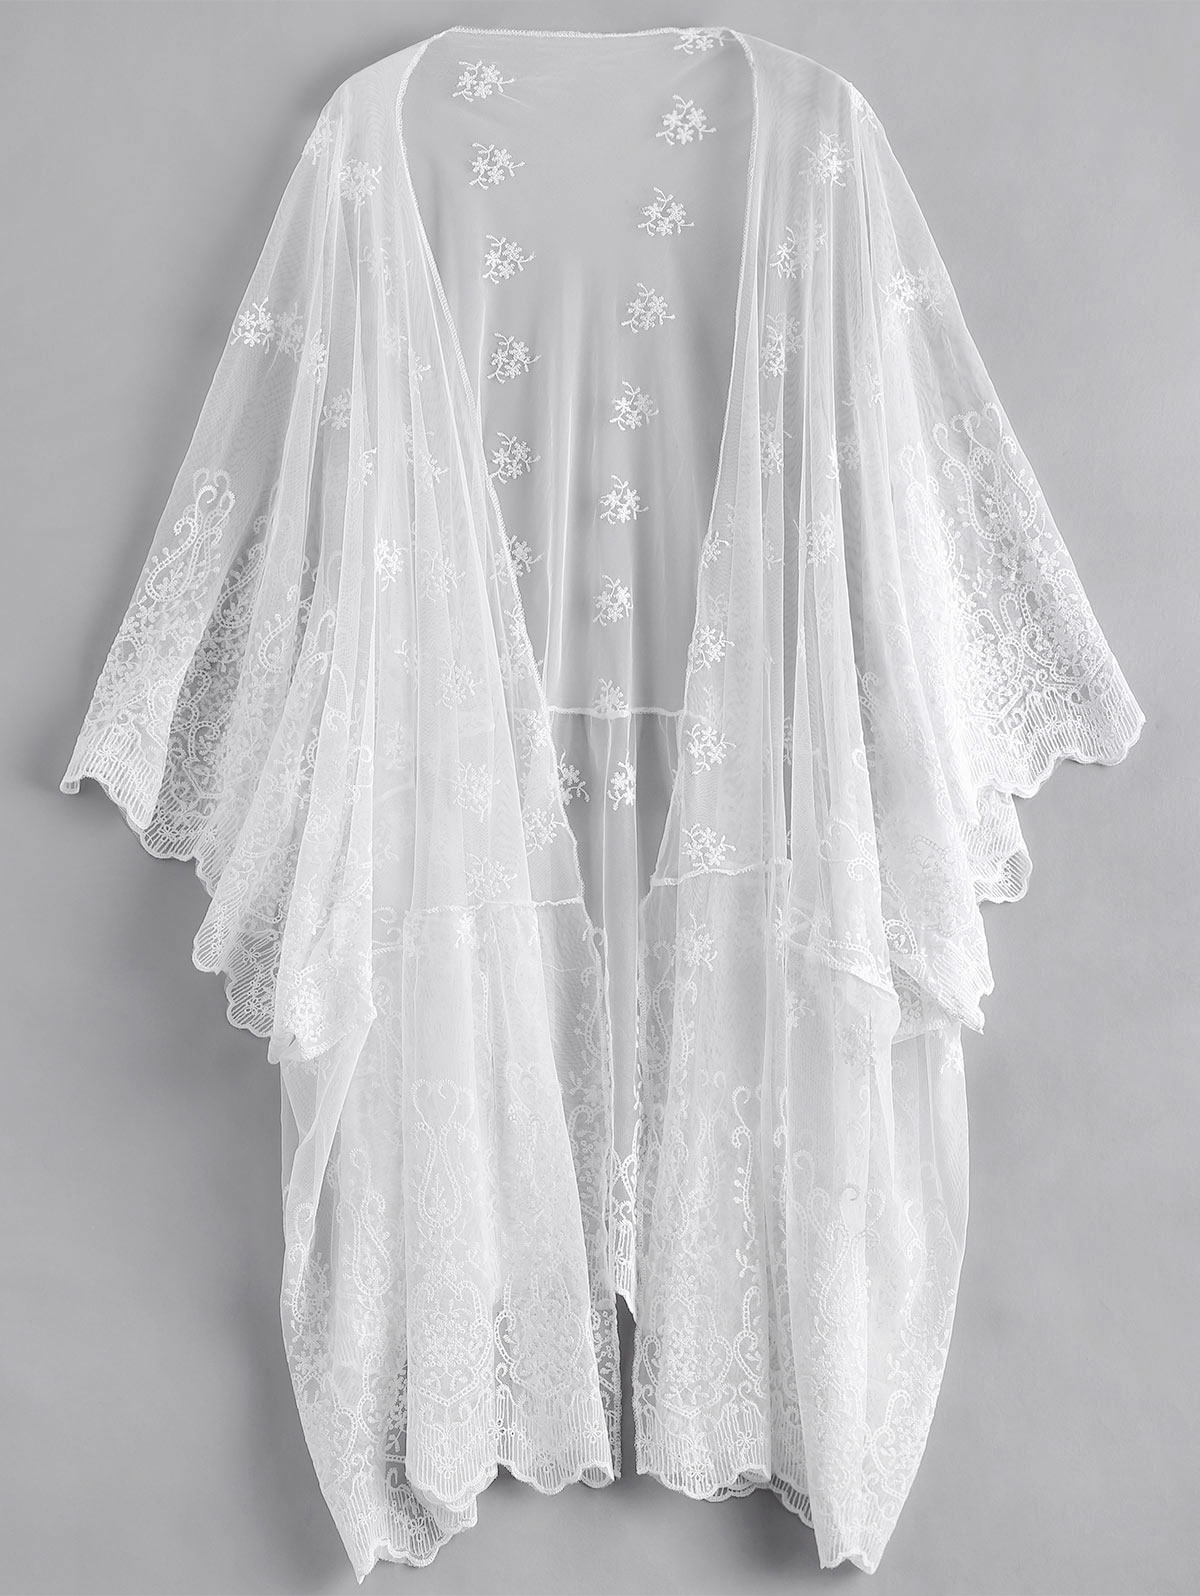 2018 Embroidered Floral Bikinis Cover Up White See-through Lace Beach Suit Robe De Plage Women Sarong Bathing Dress